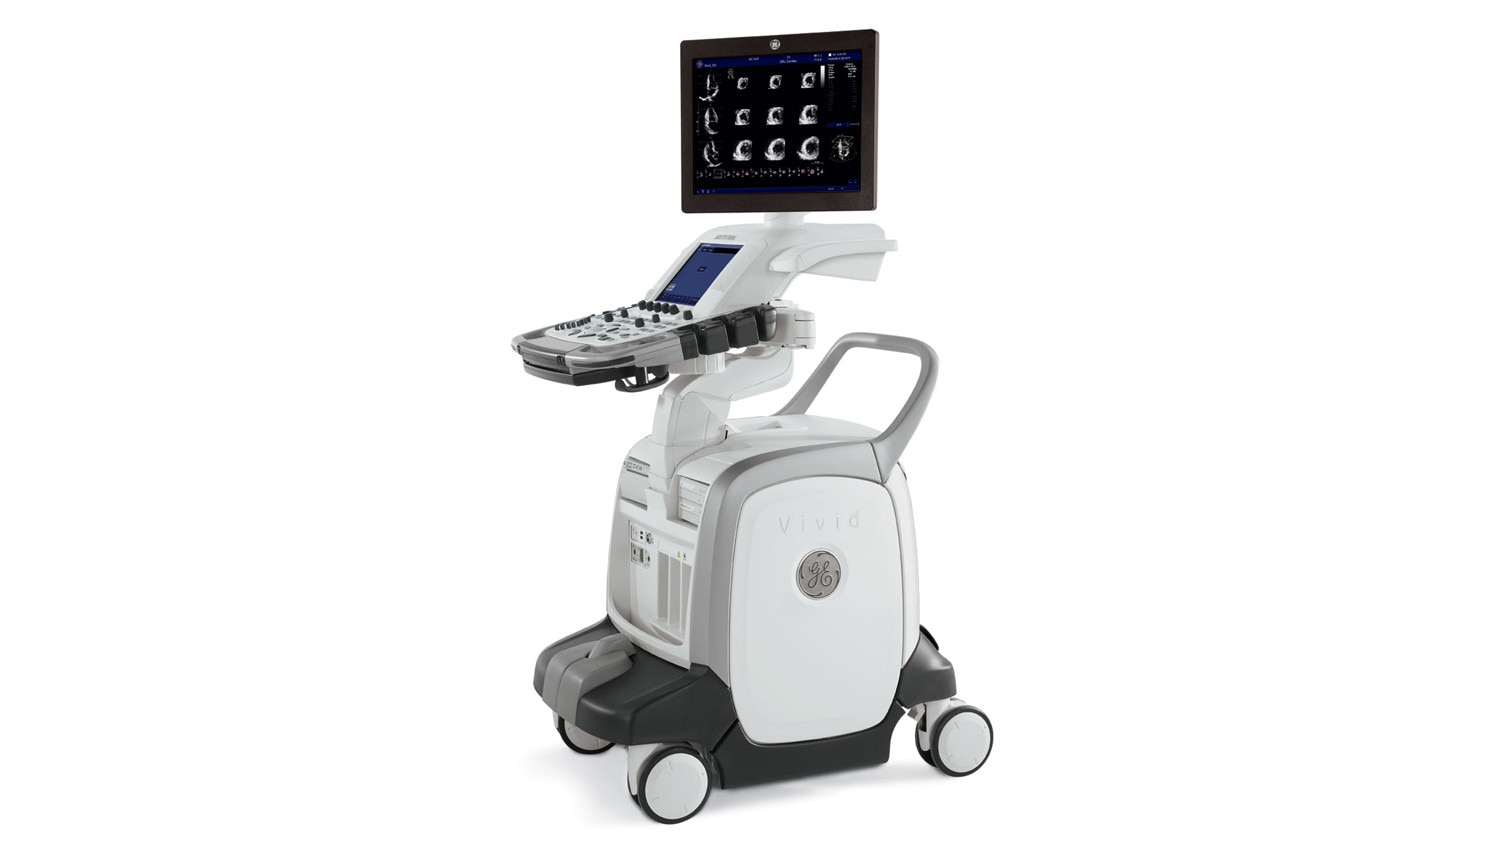 product-product-categories-ultrasound-vivid-vivid-e9-ve9_cm_intb0030_full_docking_cart.jpg